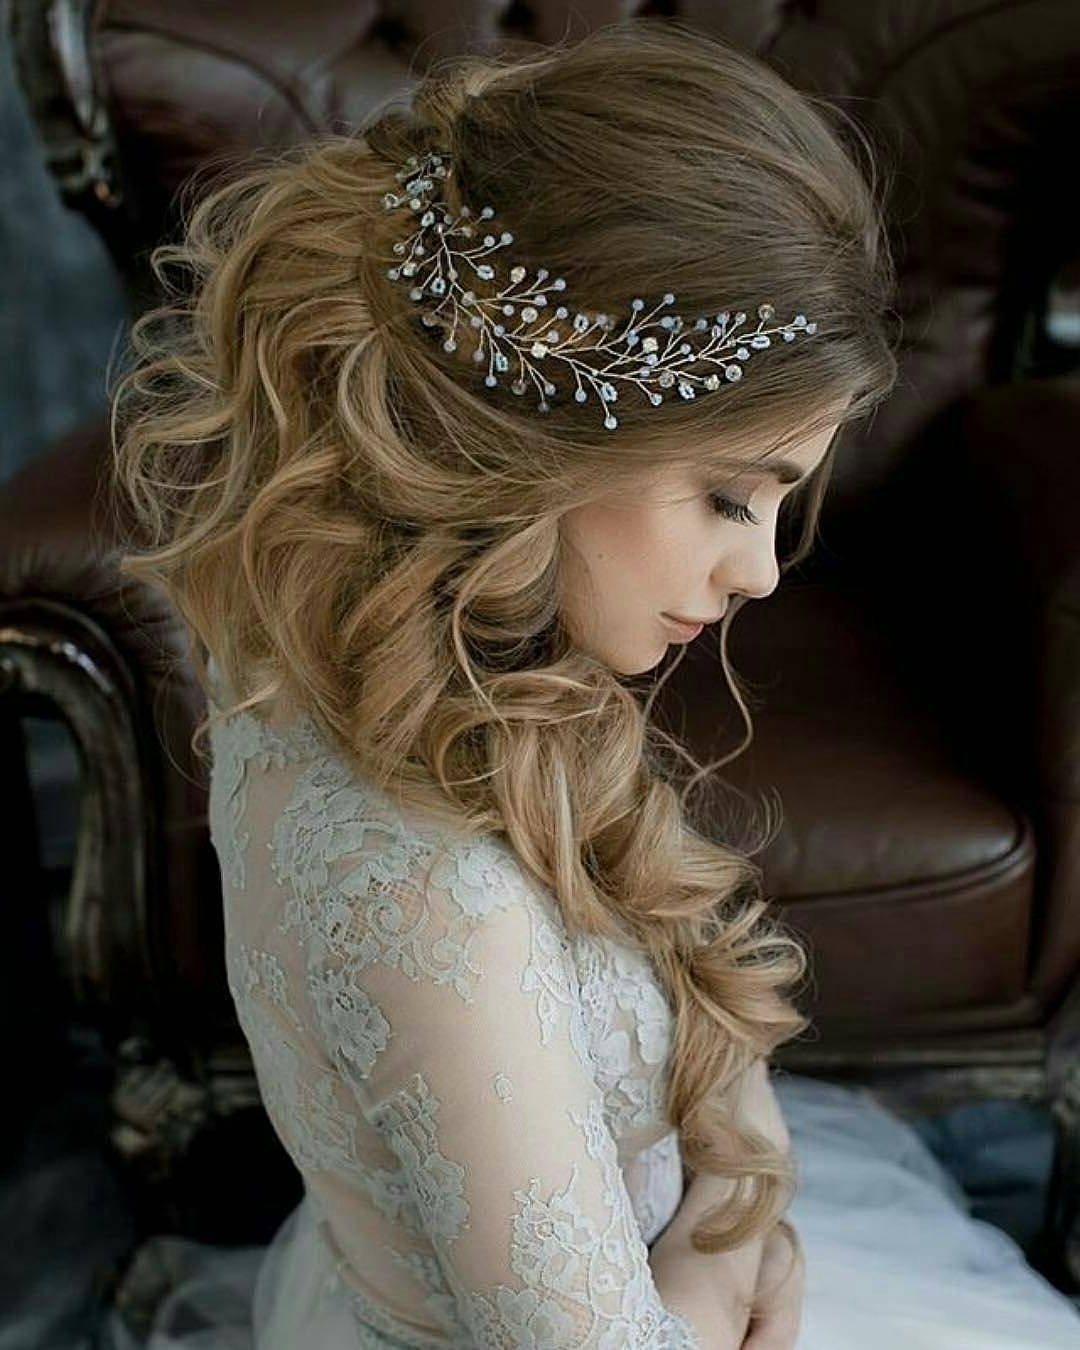 10 Lavish Wedding Hairstyles For Long Hair – Wedding Hairstyle Ideas Intended For Most Popular Wedding Hairstyles For Oval Face (View 2 of 15)